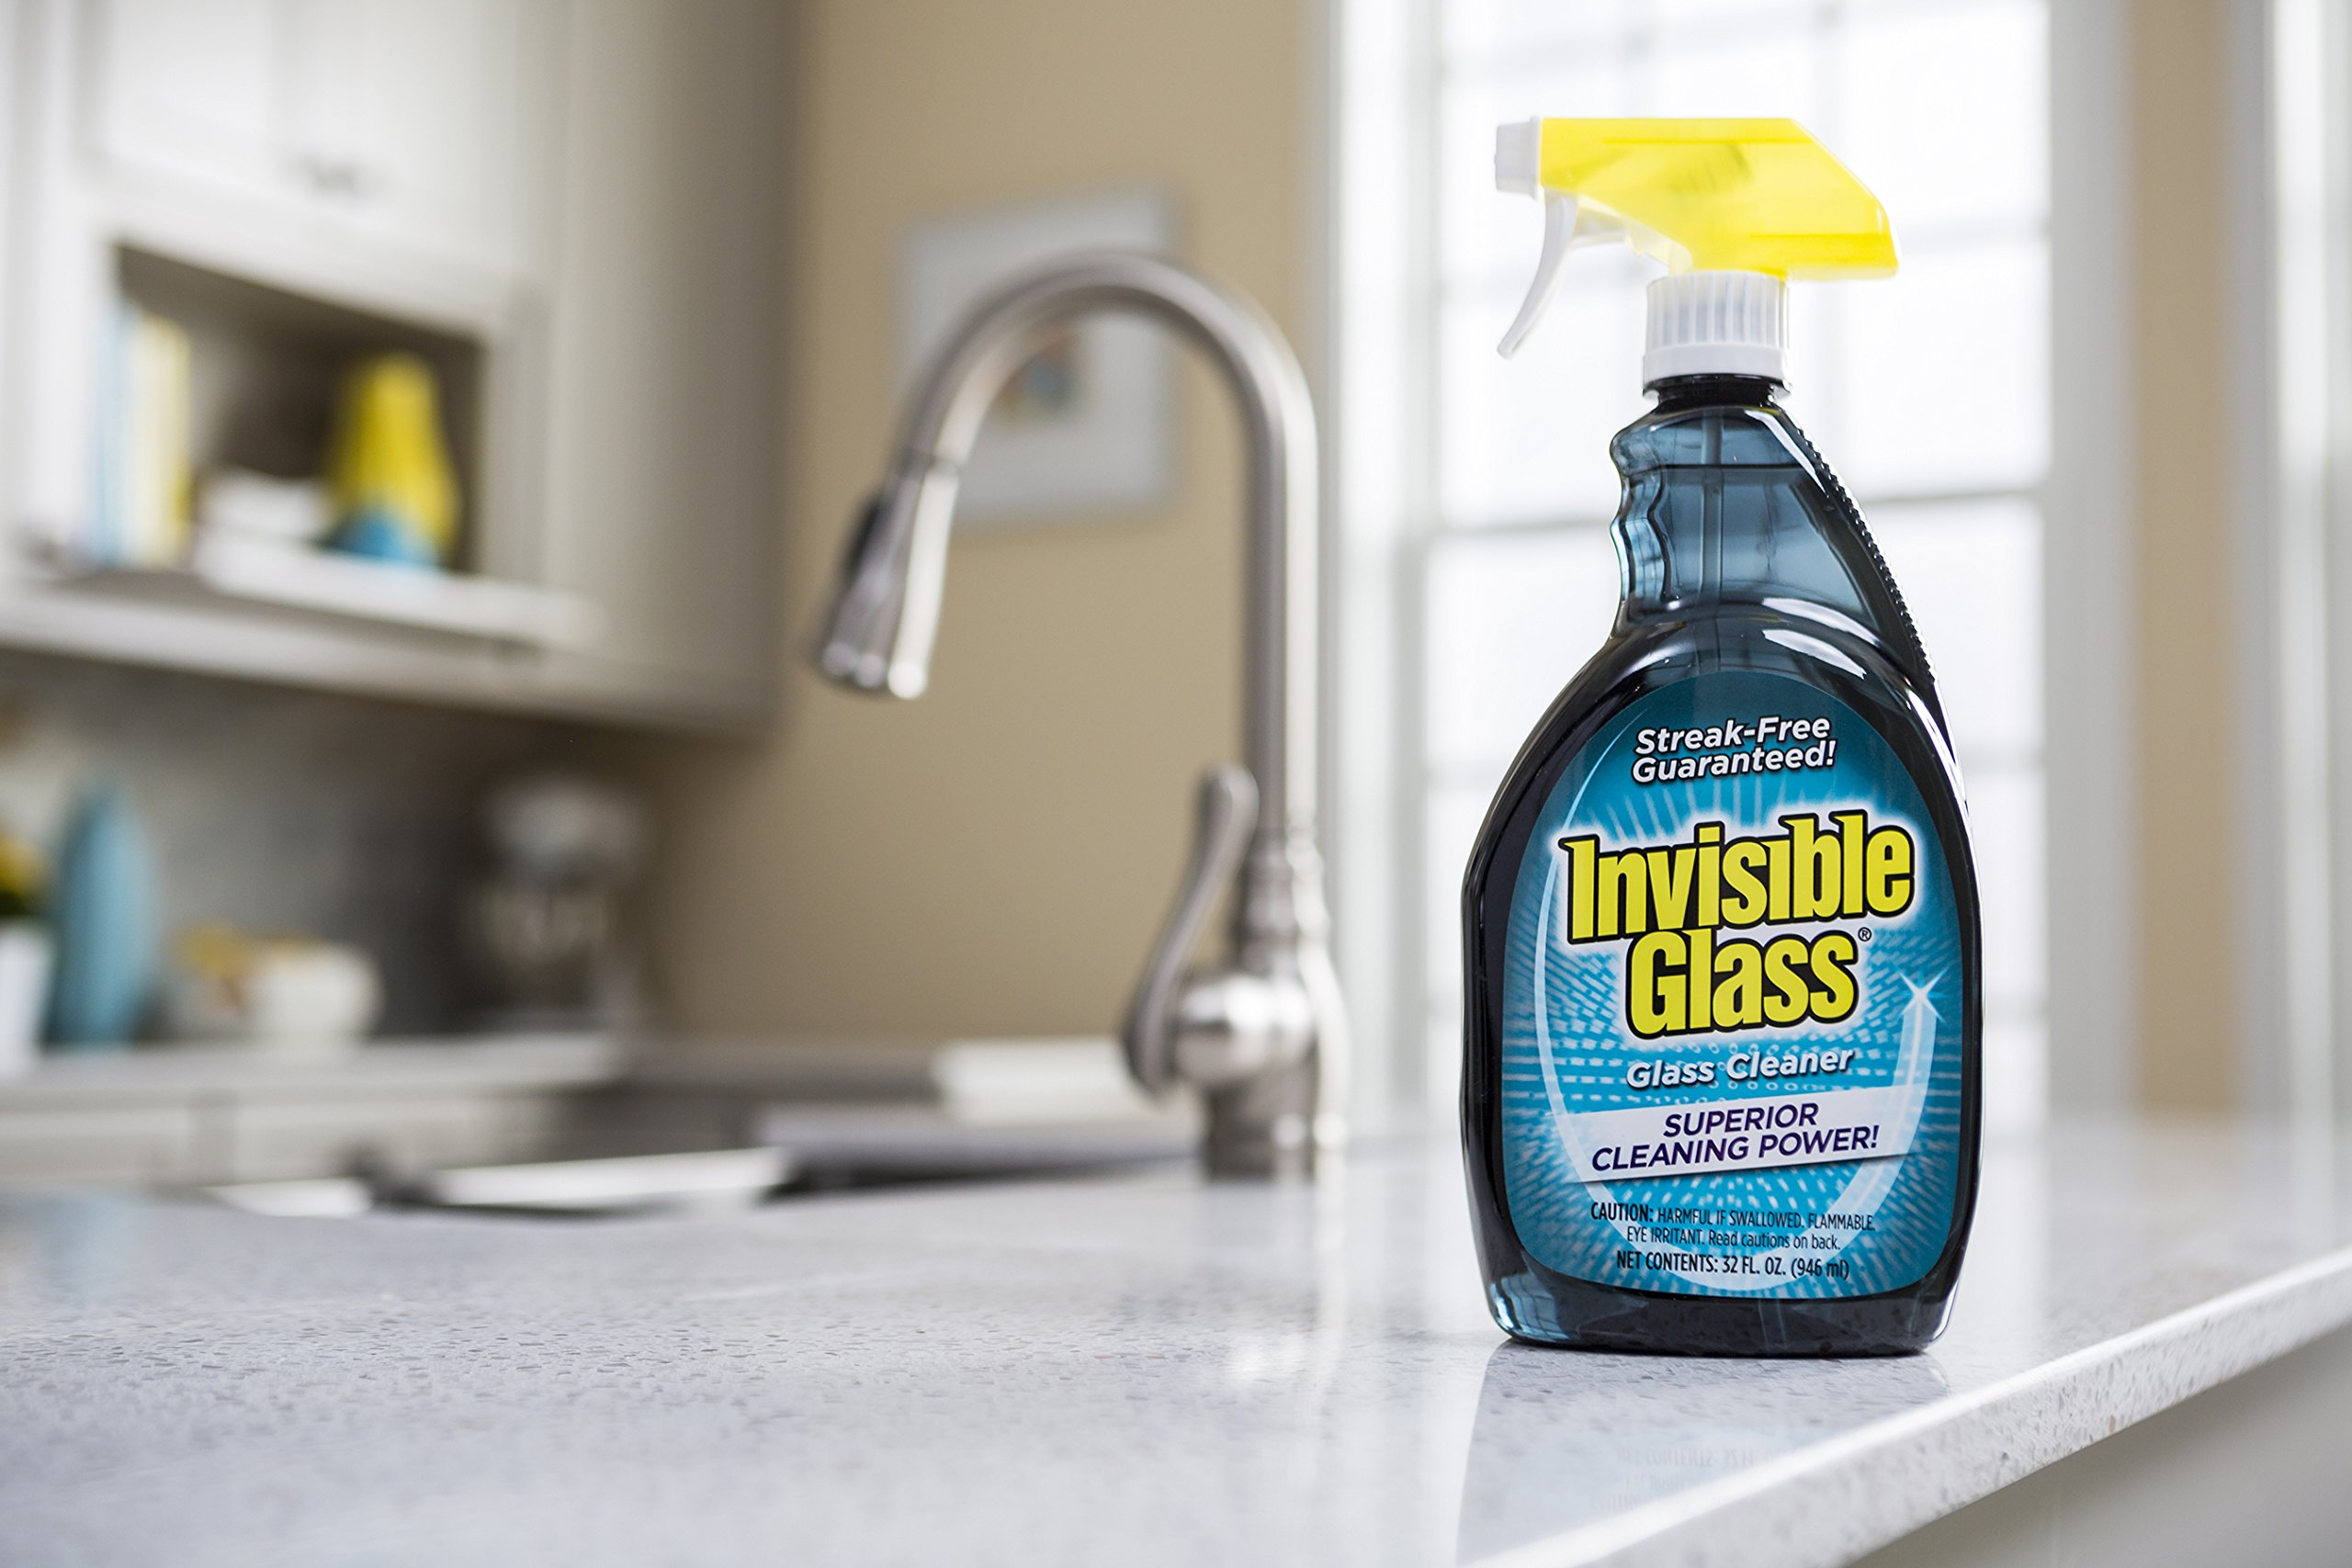 Invisible Glass 92196-6PK 32 oz. - Cleaner and Window Spray for Home and Auto for a Streak-Free Shine. Film-Free Glass Cleaner Safe for Tined and Non-Tinted Windows. Windshield Film Remover, Set of 6 by Invisible Glass (Image #2)